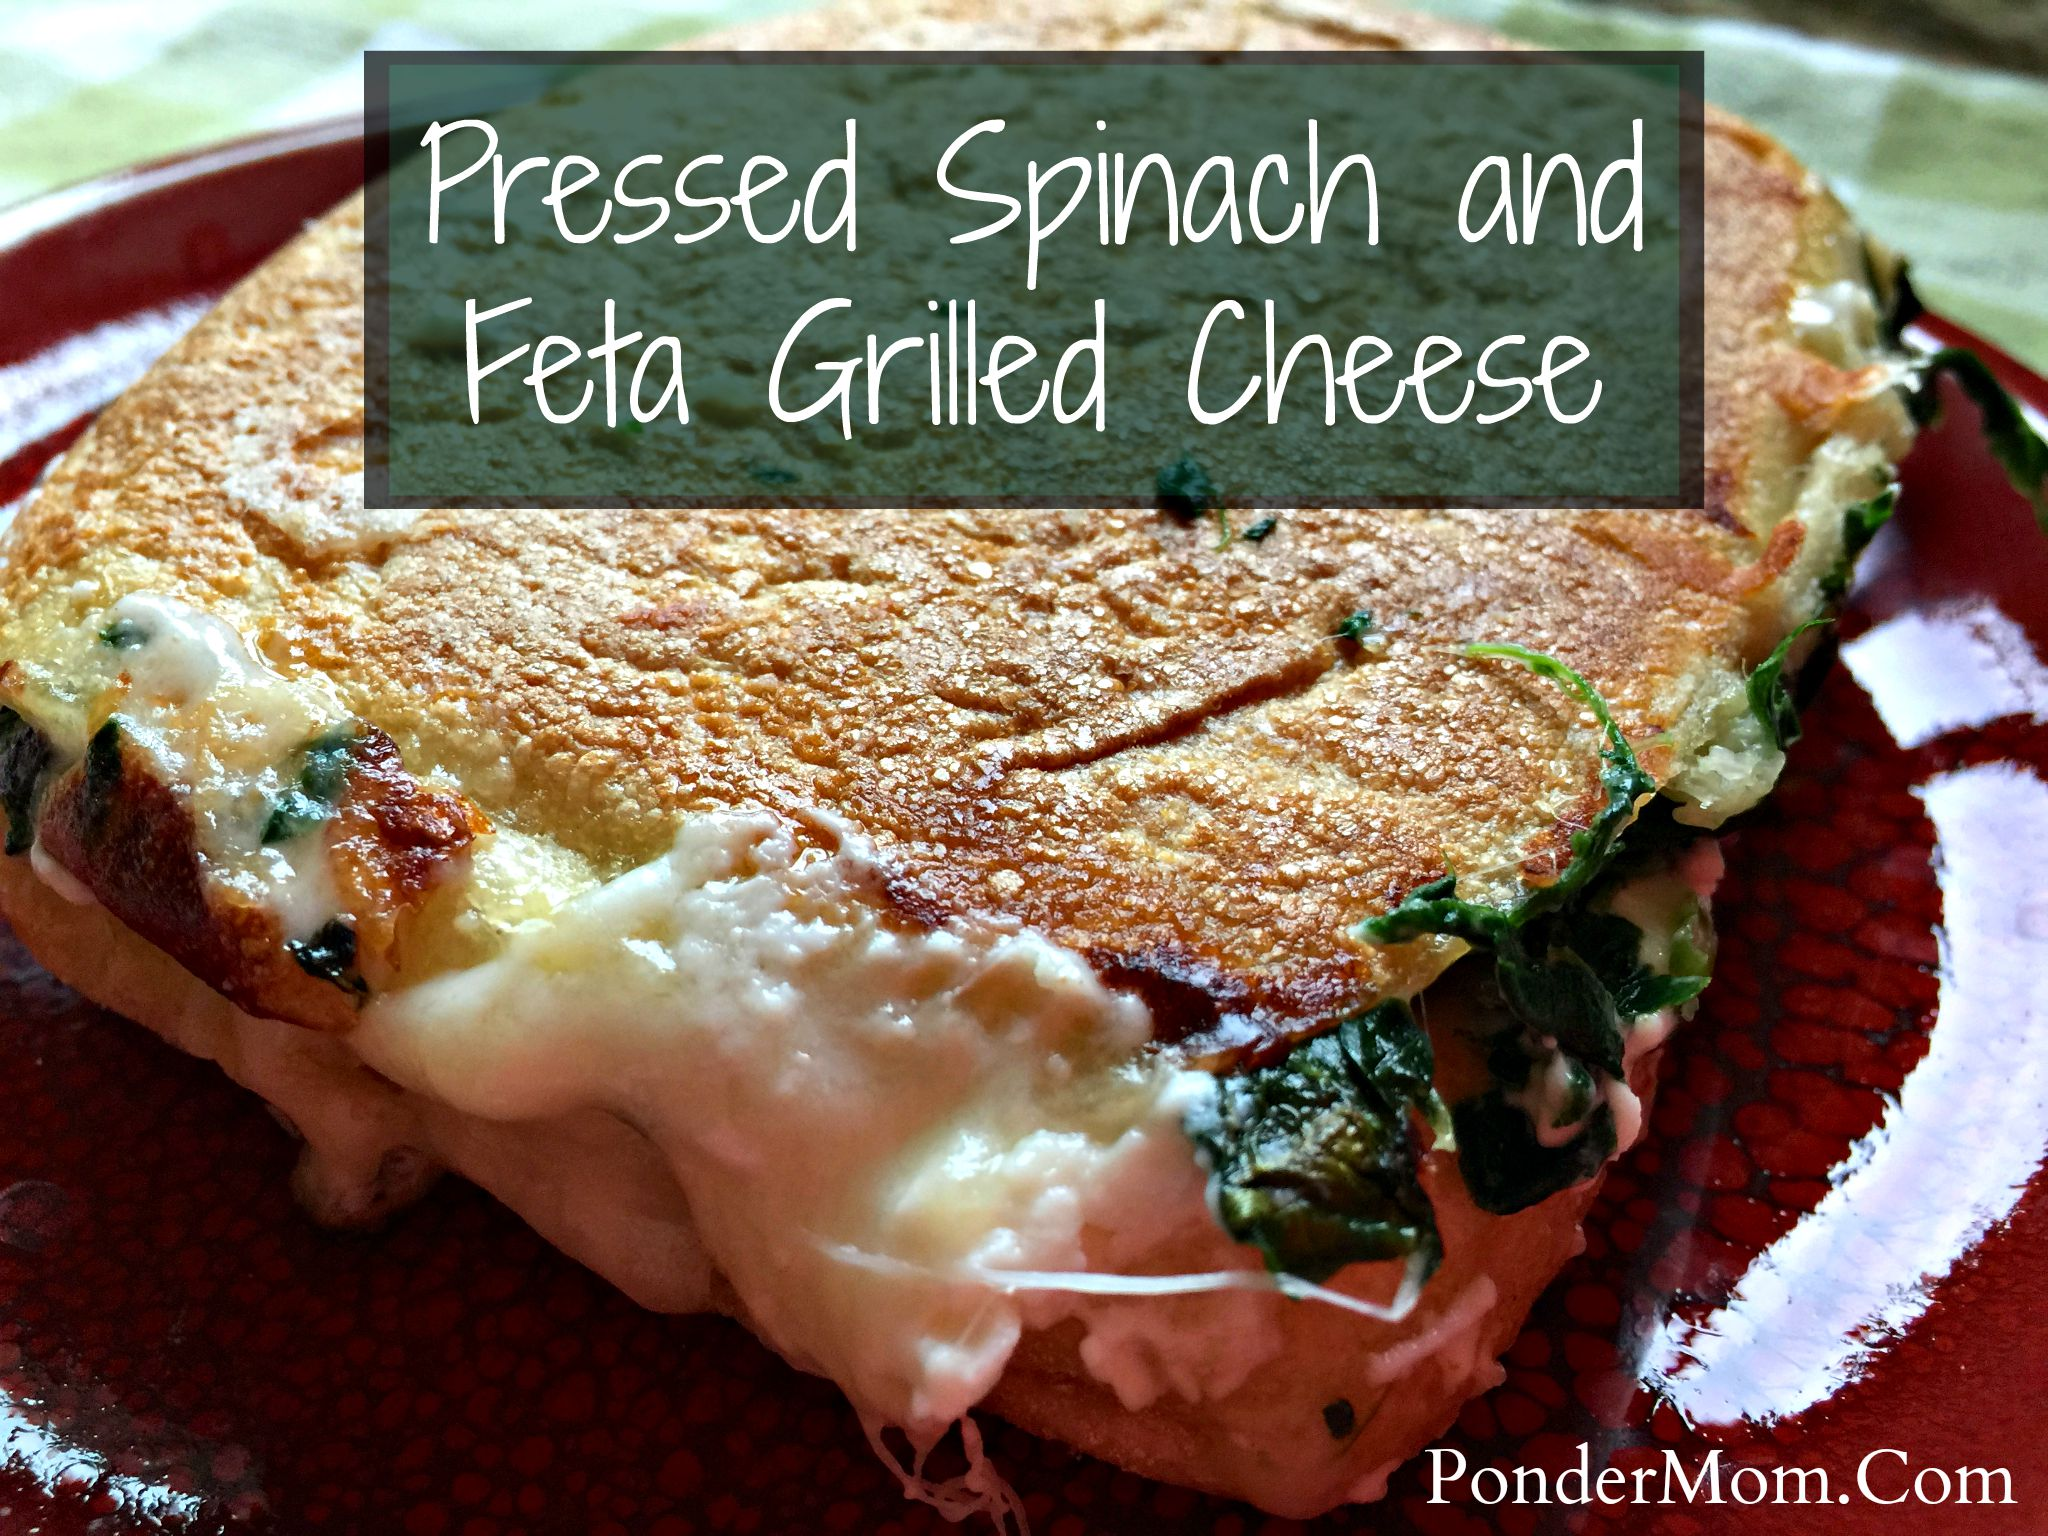 6 Super Simple Meals for New College Cooks Part I: Pressed Spinach and Feta Grilled Cheese, & Chipotle Chicken